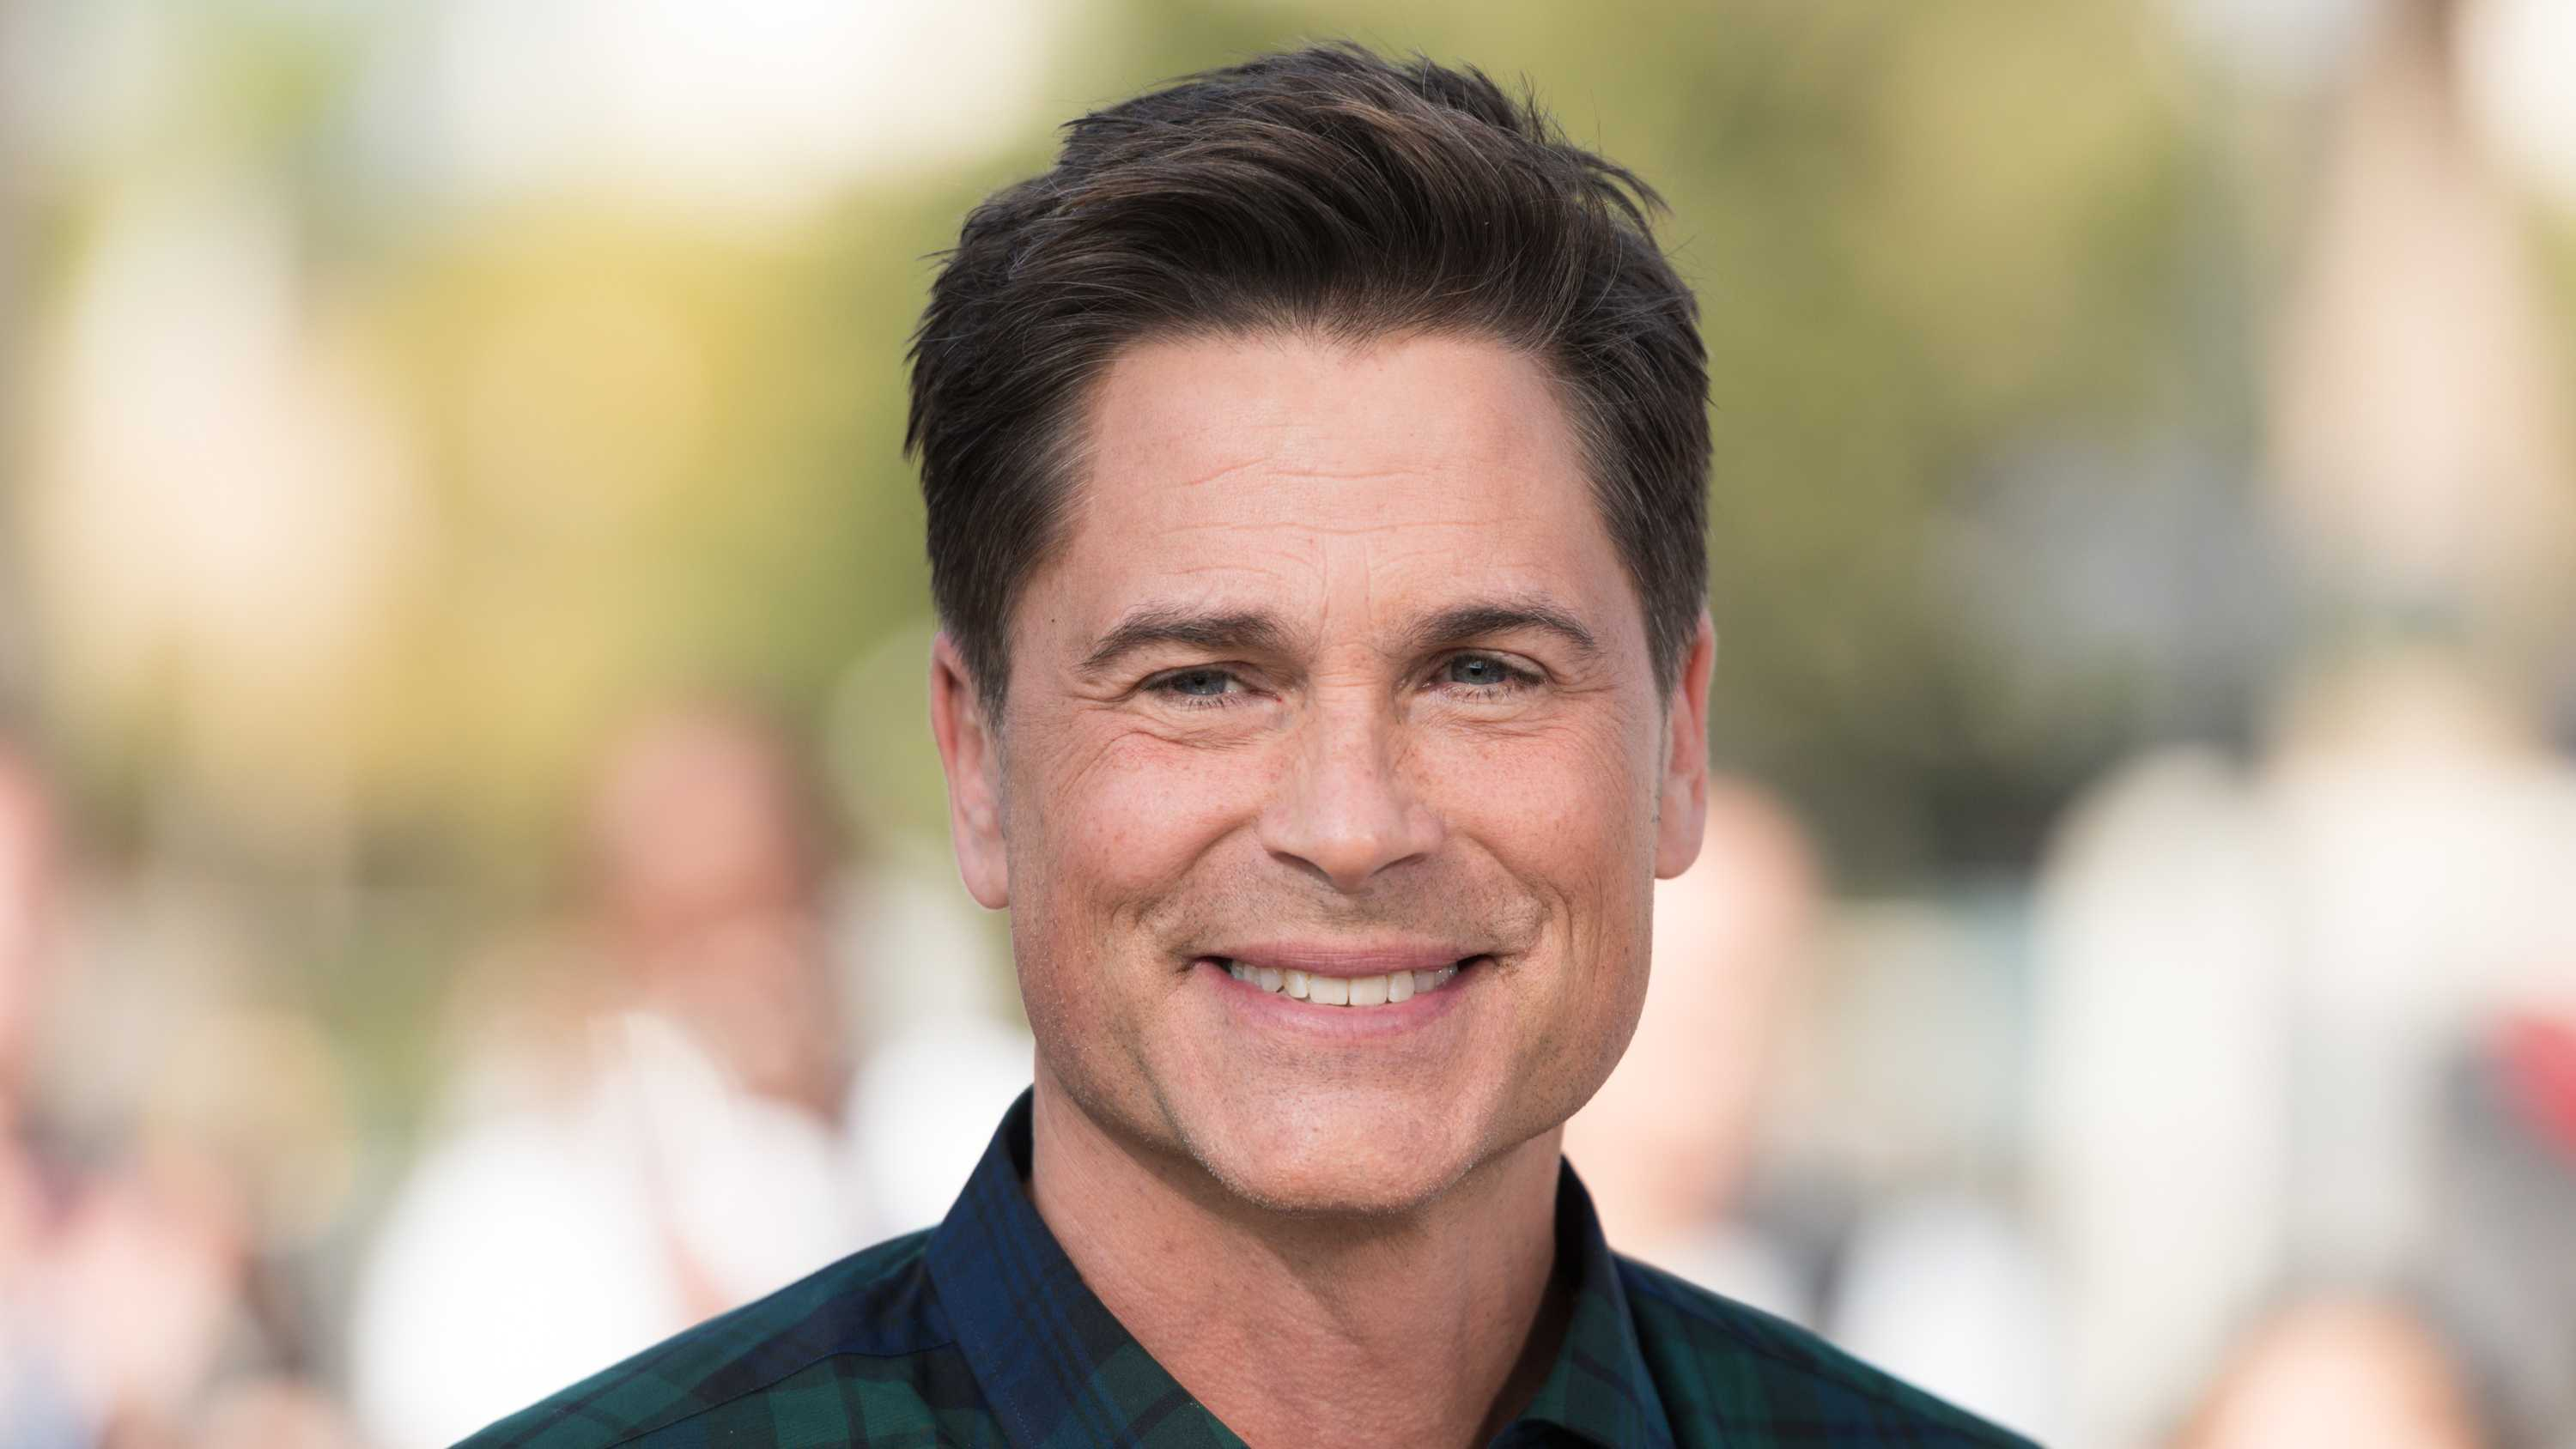 Rob Lowe's Tips for Beating Caregiver Burnout